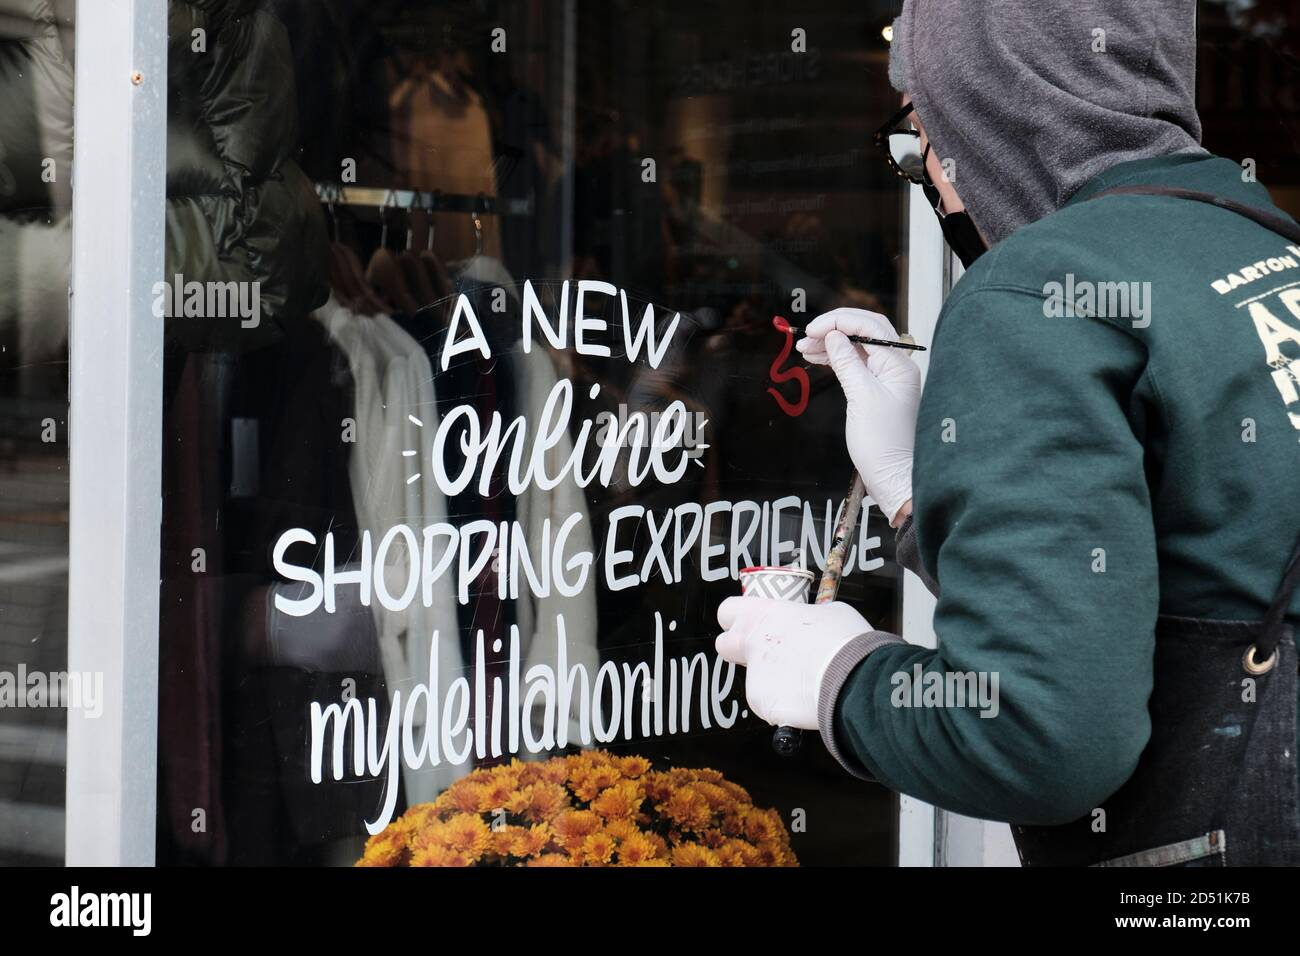 artist-painting-old-fashioned-hand-lettered-window-lettering-sign-on-store-due-to-impact-of-pandemic-the-local-artist-has-seen-increase-demand-2D51K7B.jpg